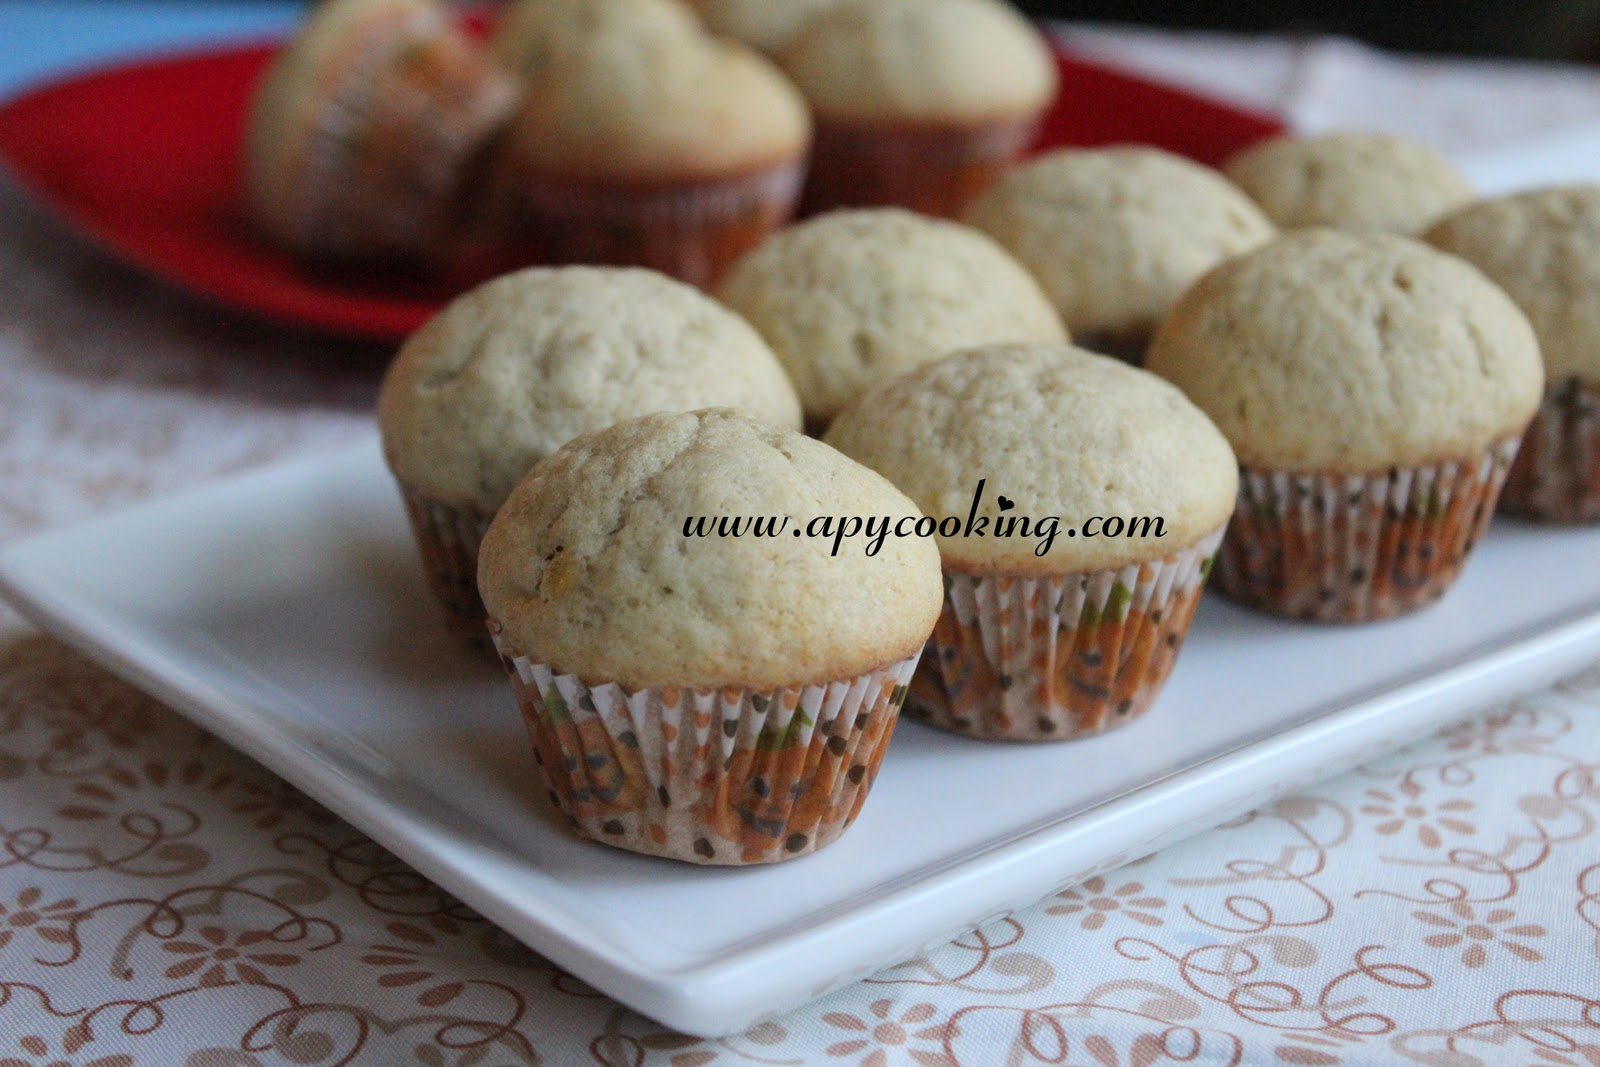 find mini muffins cute very very cute specially when they are held ...